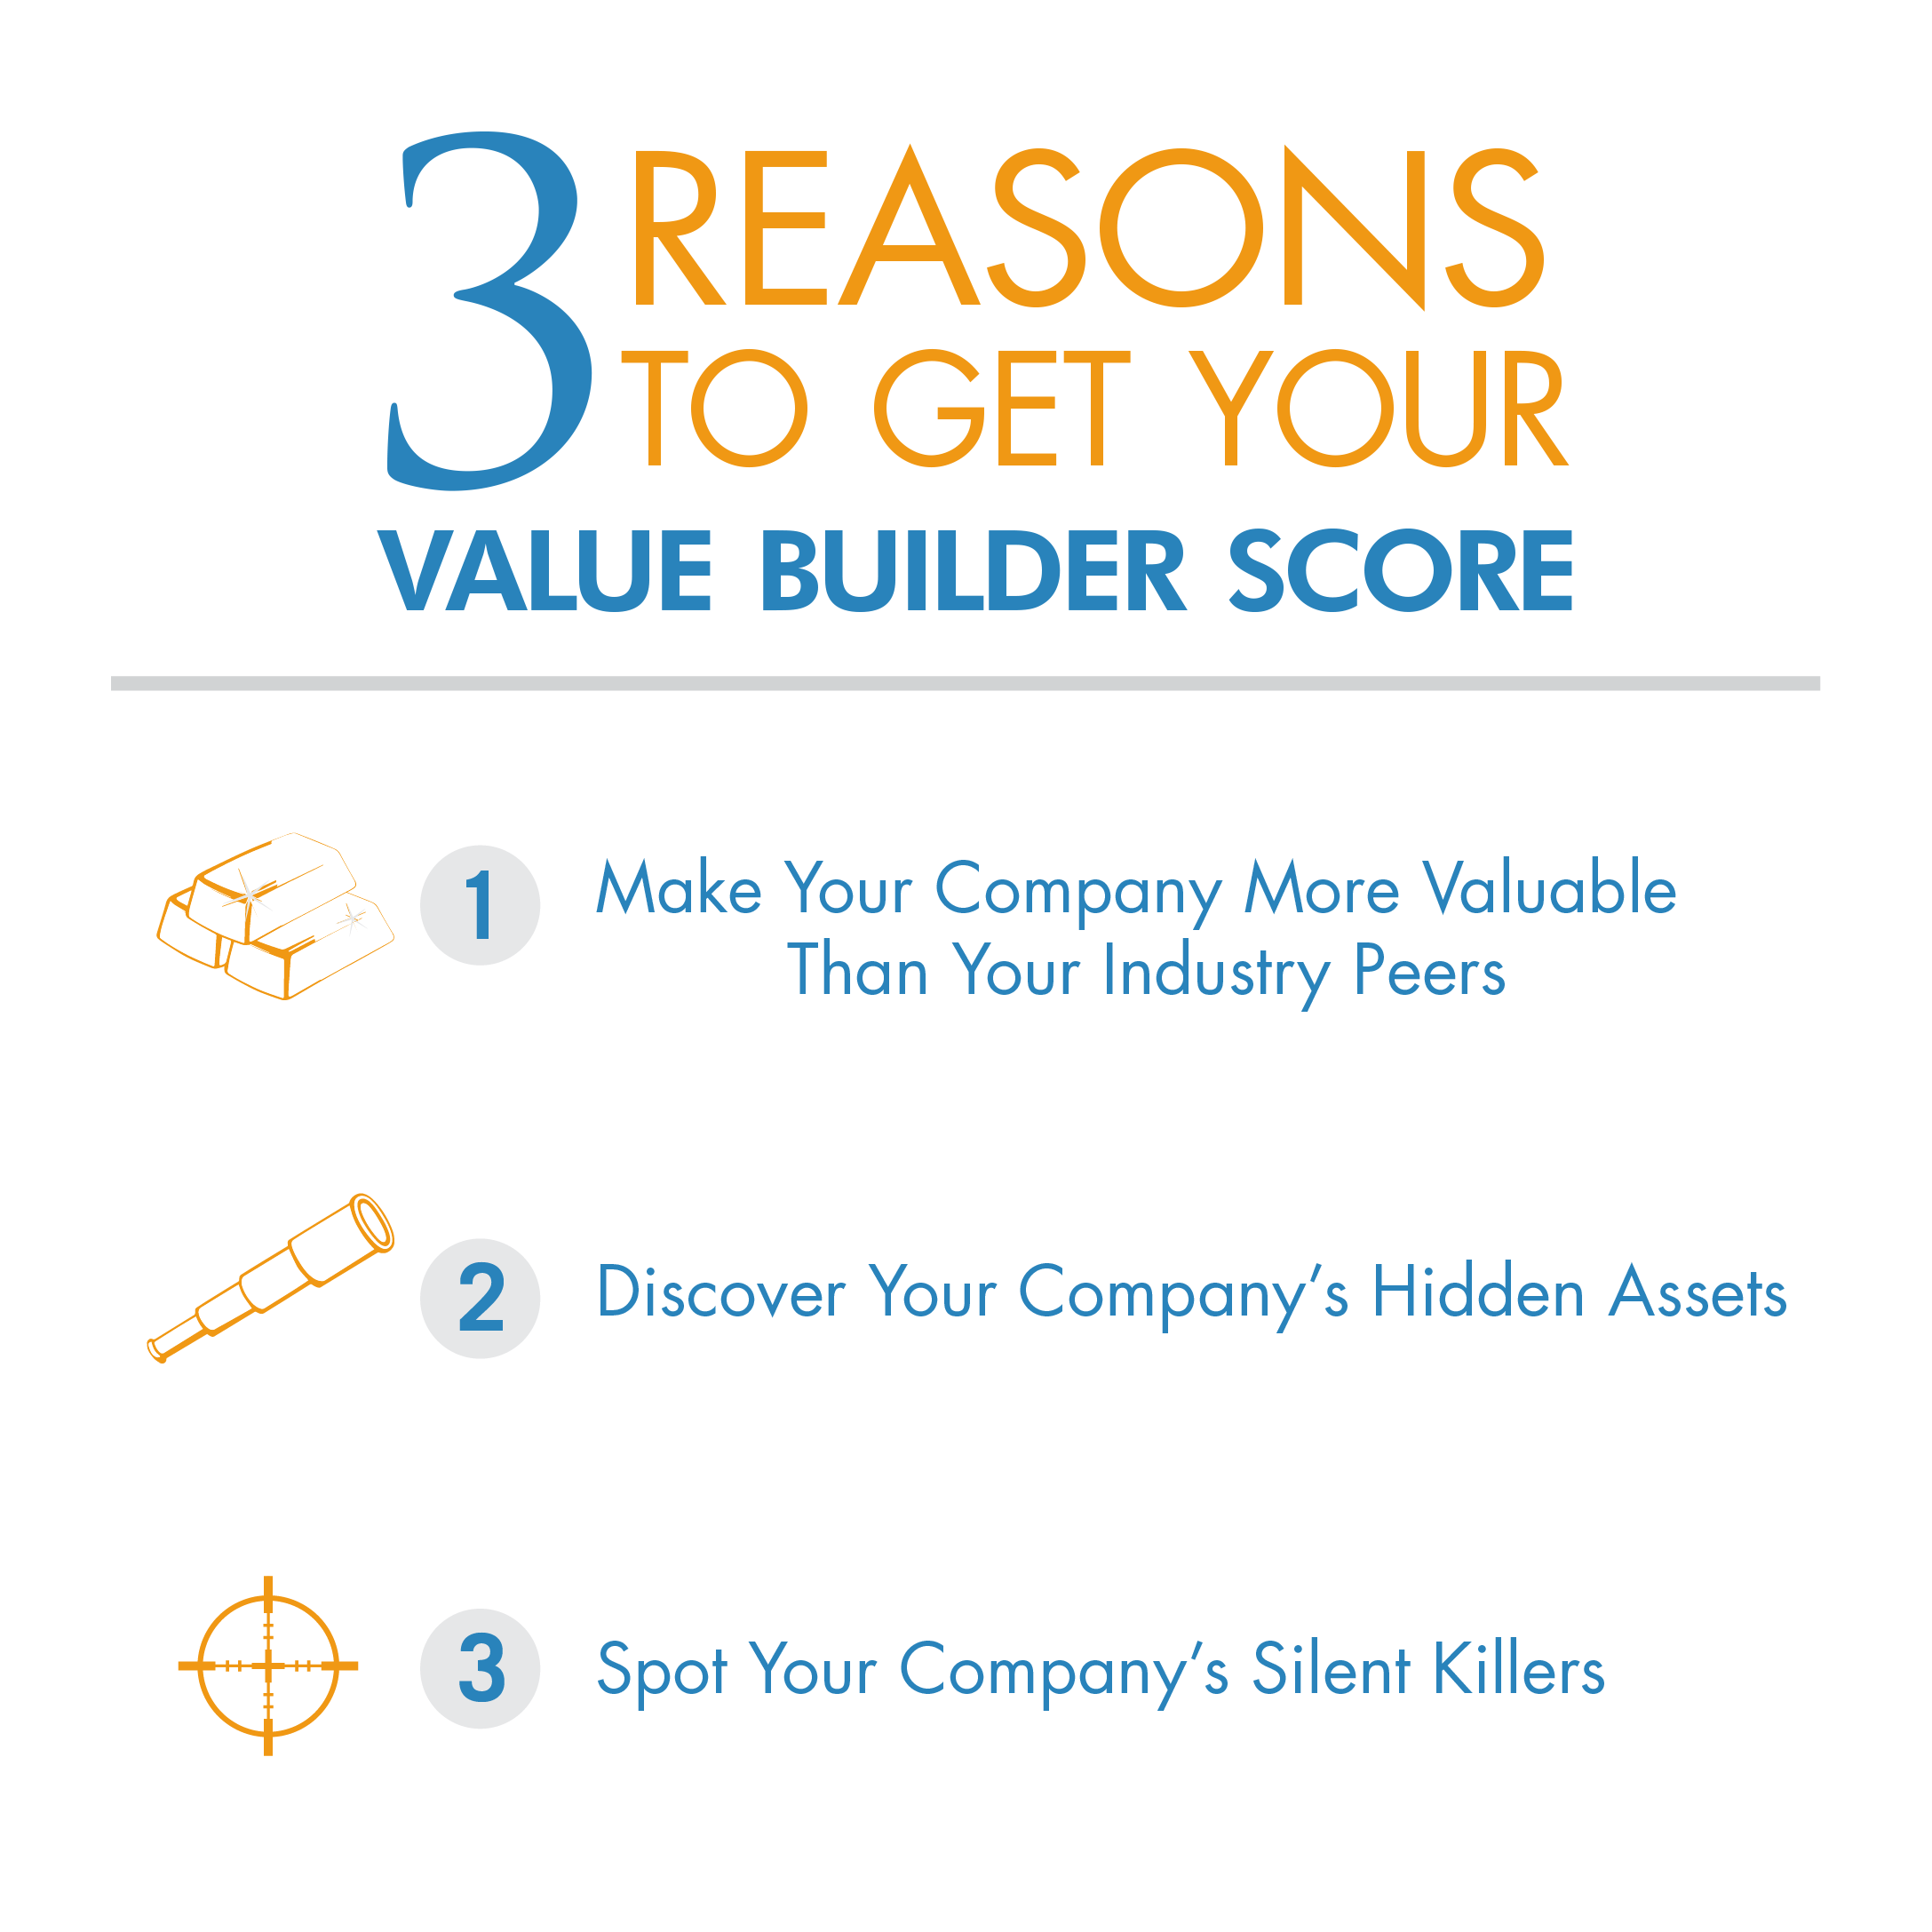 3 Reasons to get your value builder score